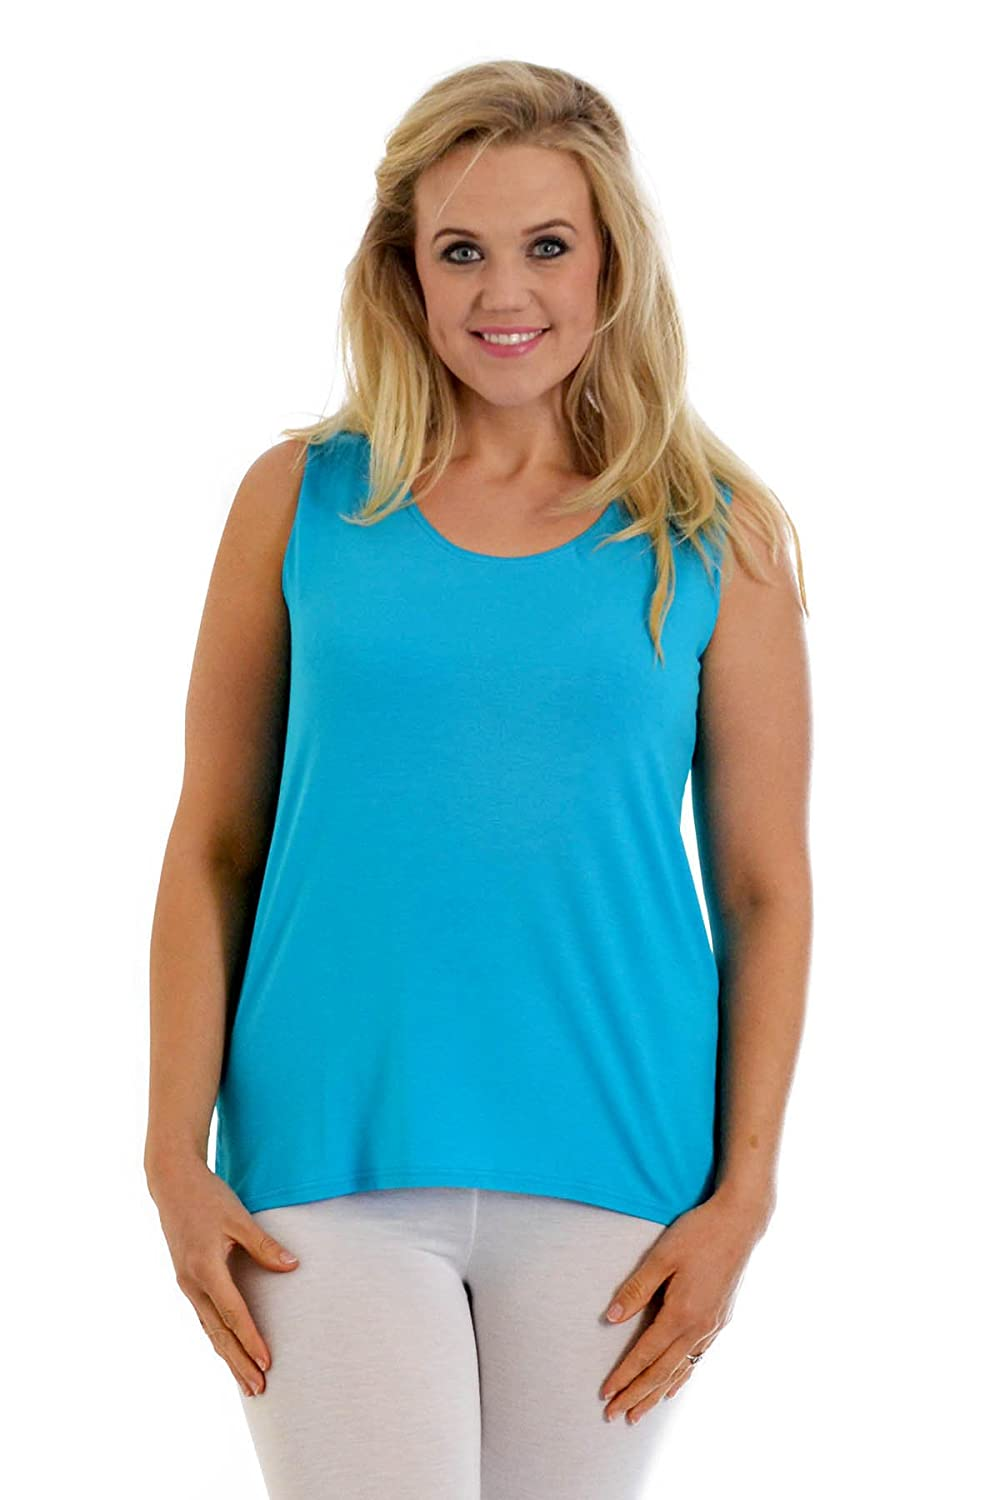 Womens Plus Size Vest Top Ladies Sleeveless Camisole Long Tunic Round Neck Quality Fabric Nouvelle Collection